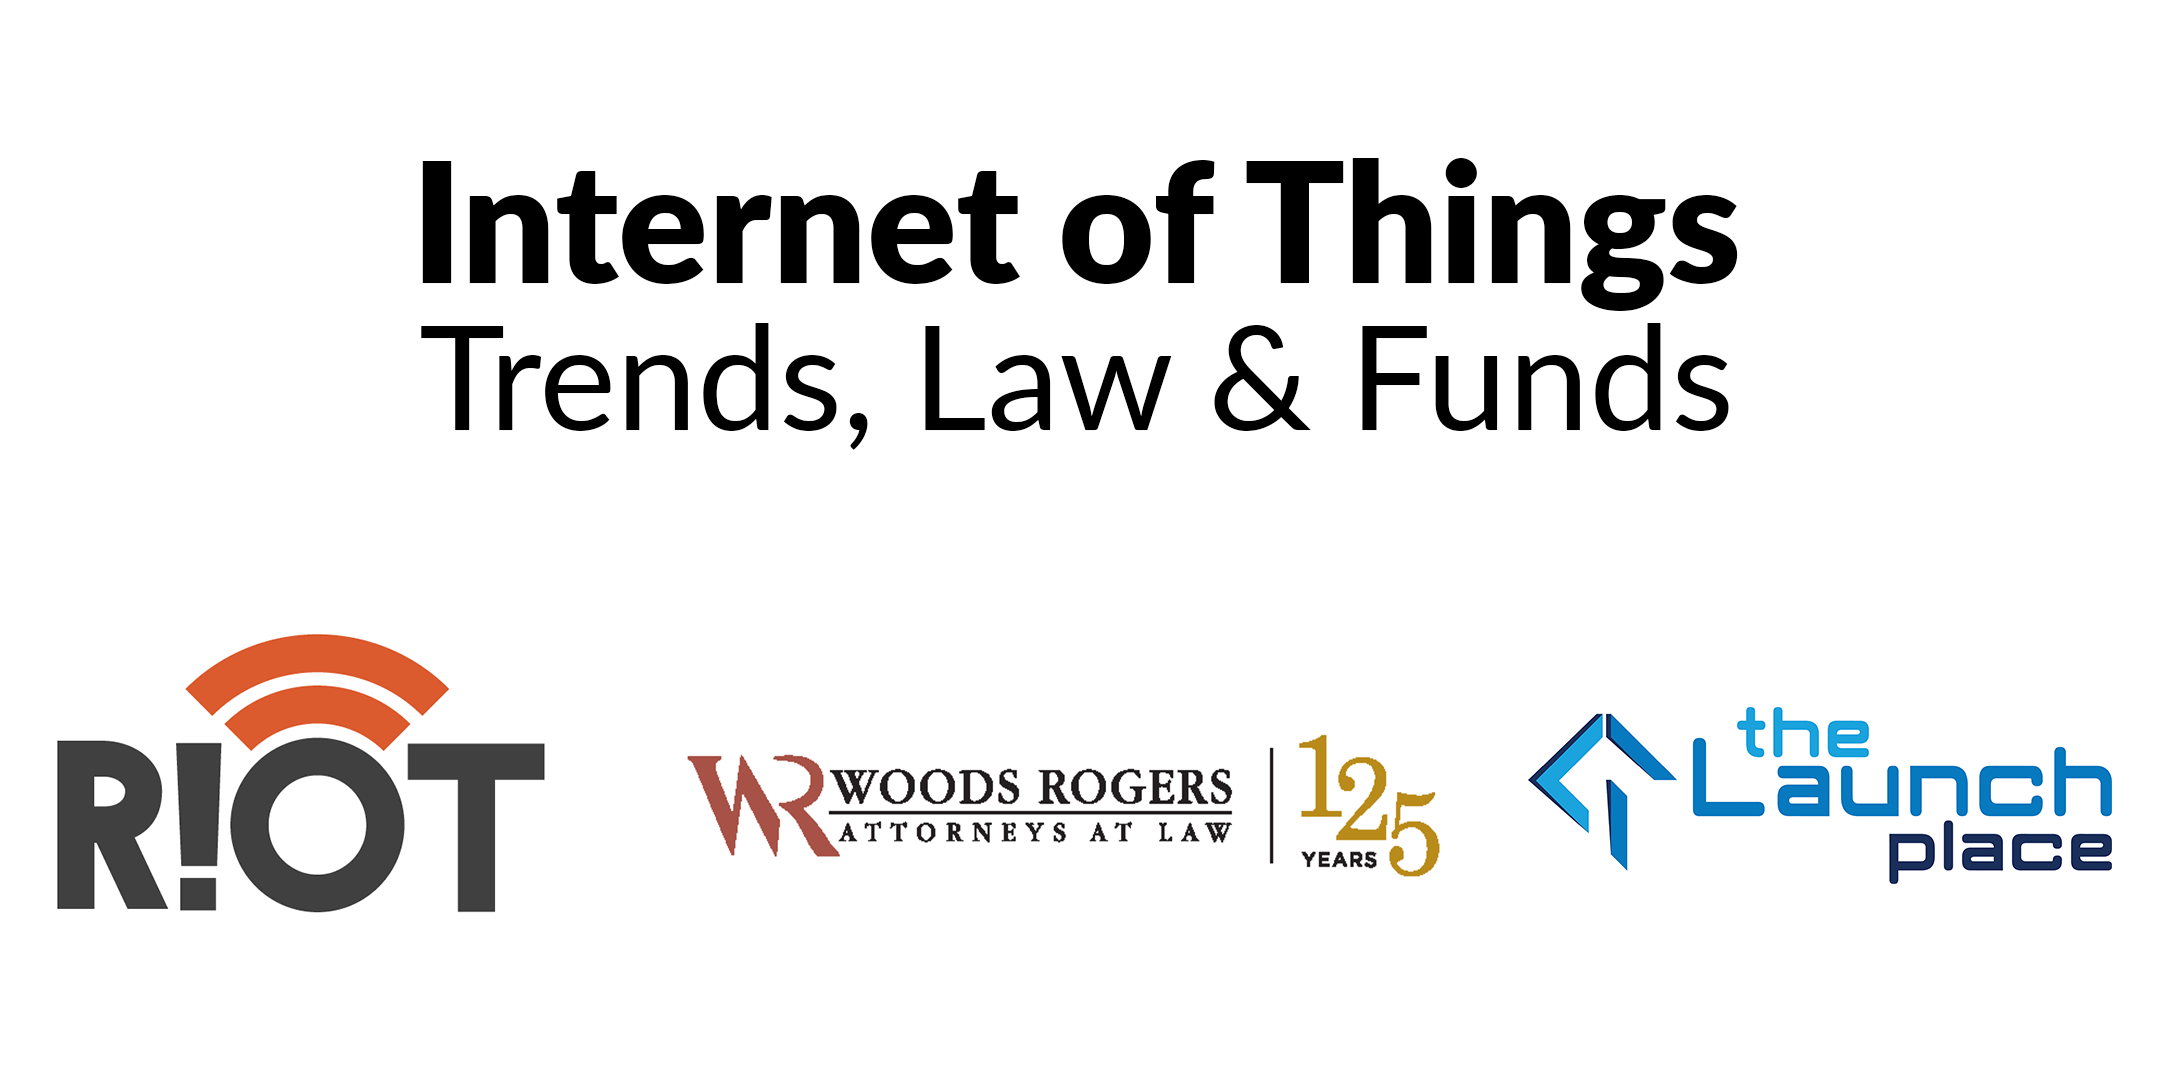 Internet of things event july 10 danville va riot woods rogers the launch place